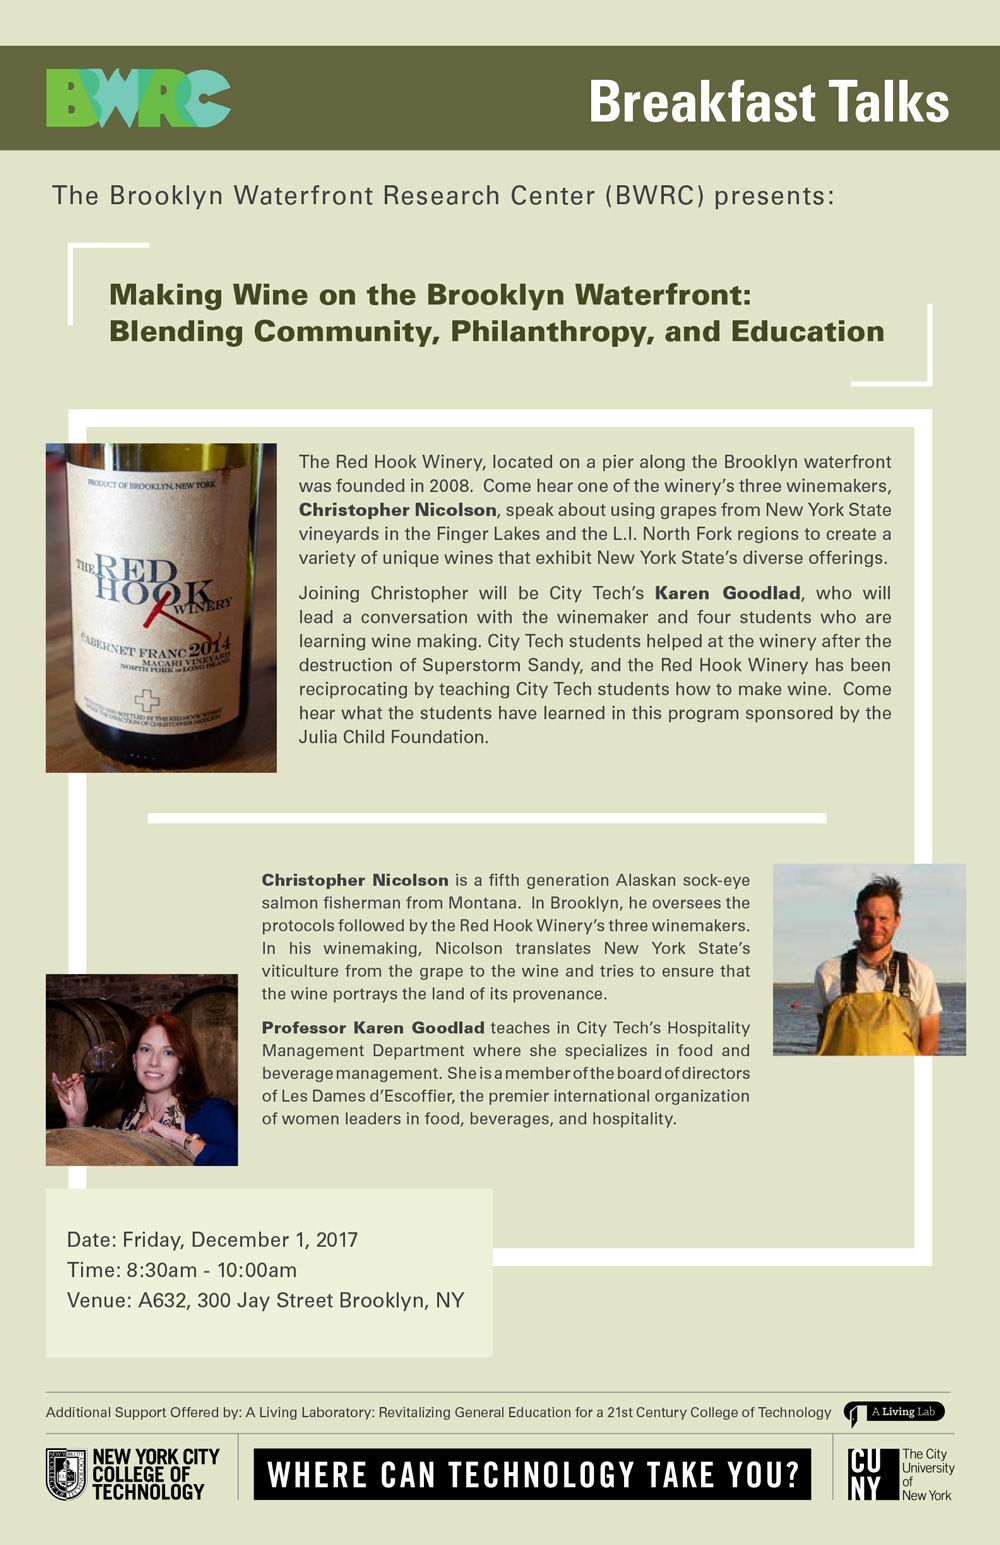 Making Wine on the Brooklyn Waterfront: Blending Community, Philanthropy, and Education